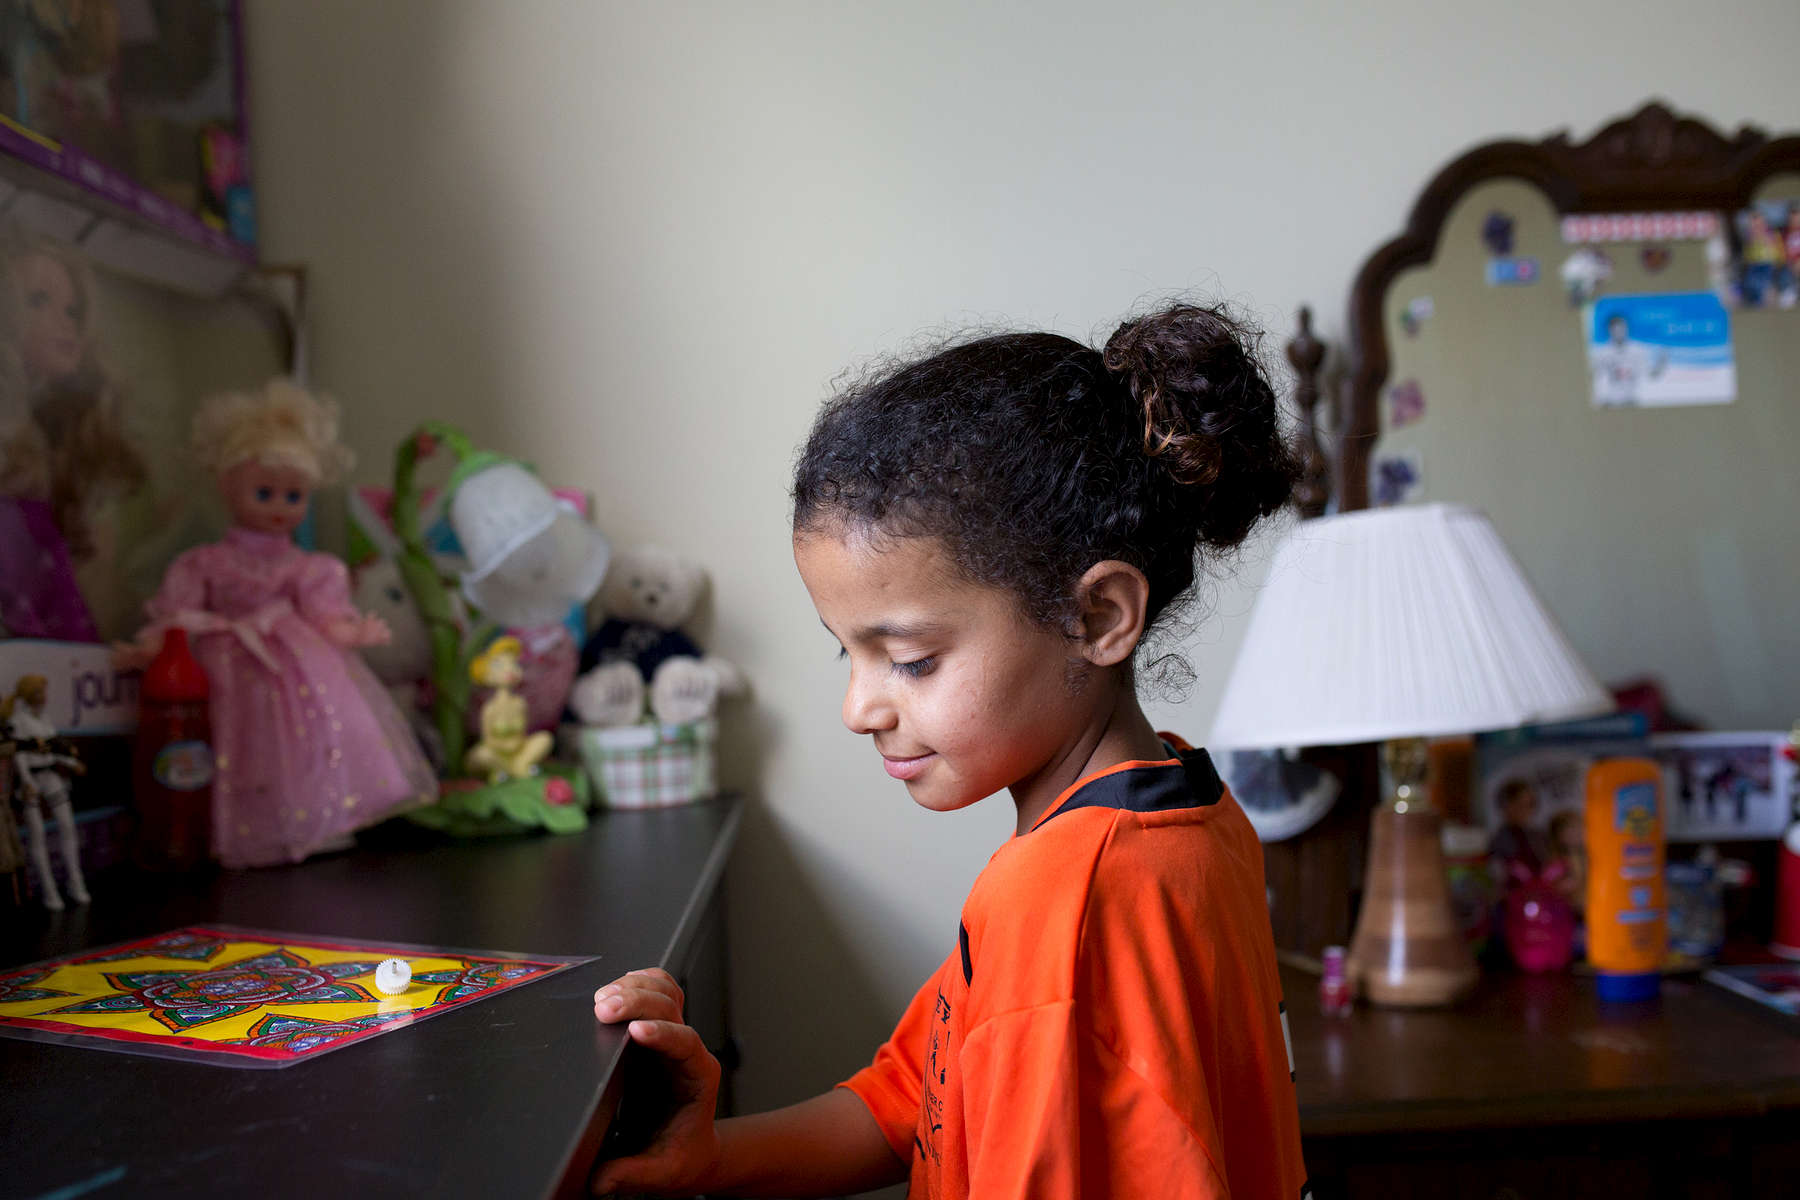 Zahiya in her room in her family home in Toronto.